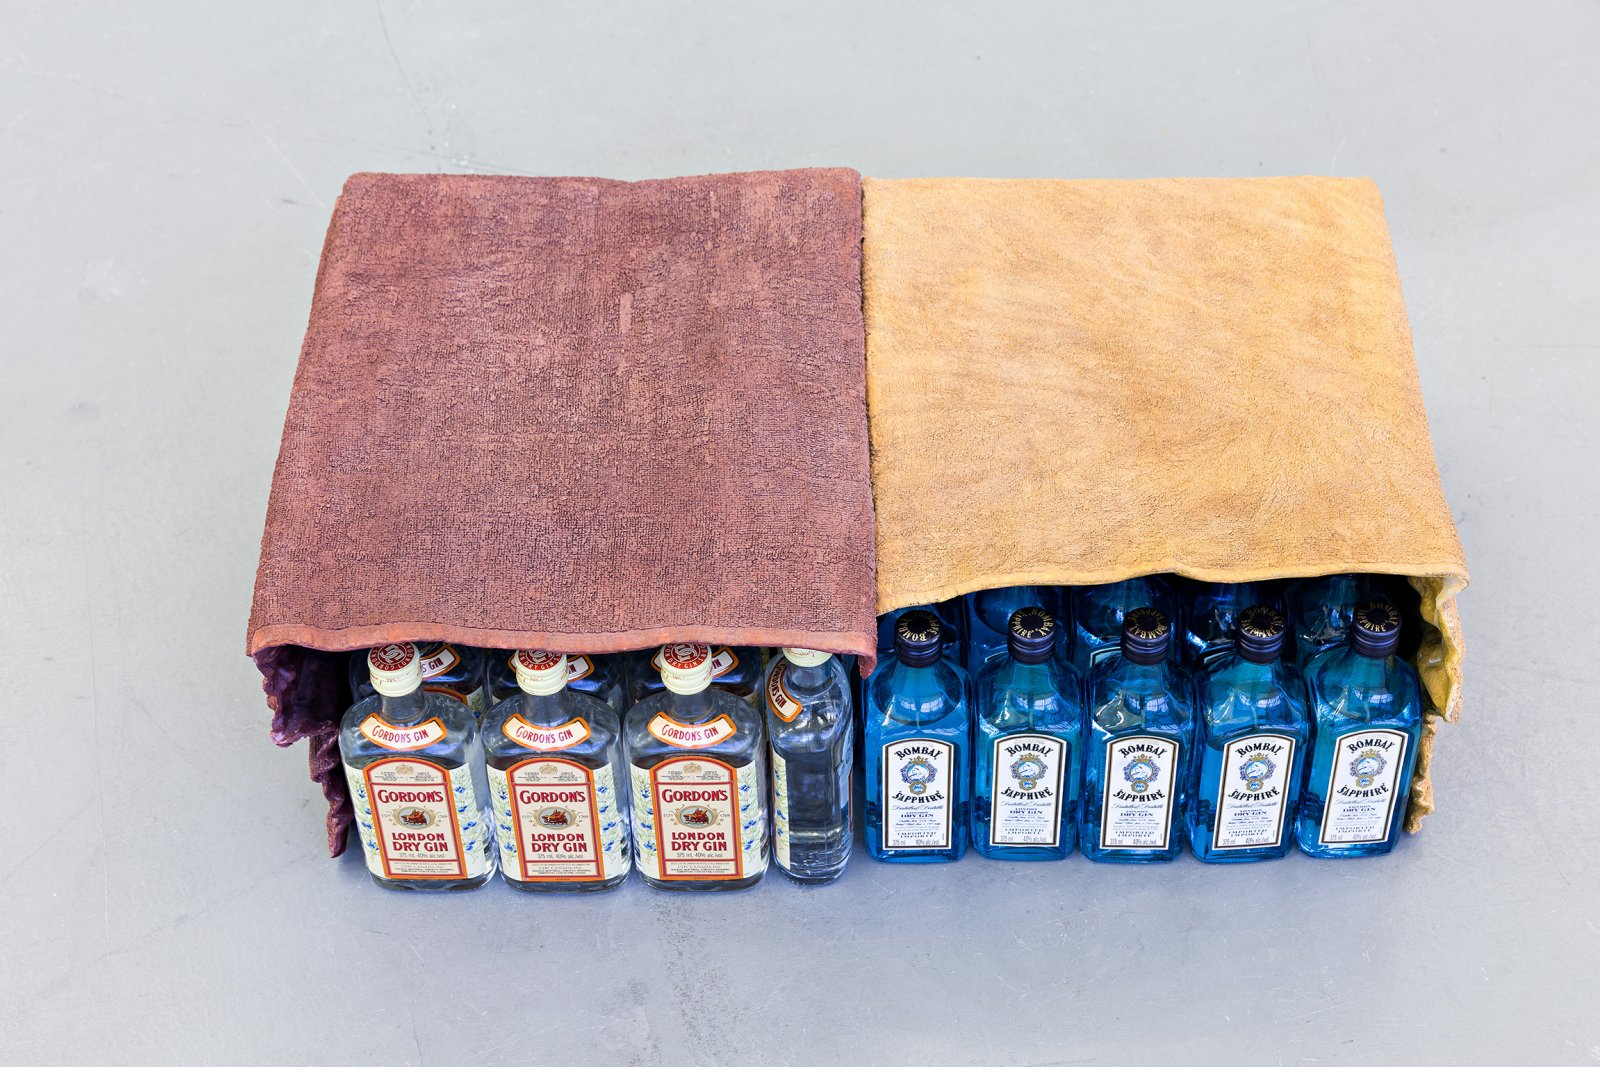 Liz Magor, Double Cabinet (Rust and Wine), 2001, polymerized gypsum, bottles of gin, 9 x 27 x 17 in. (24 x 69 x 43 cm) by Liz Magor